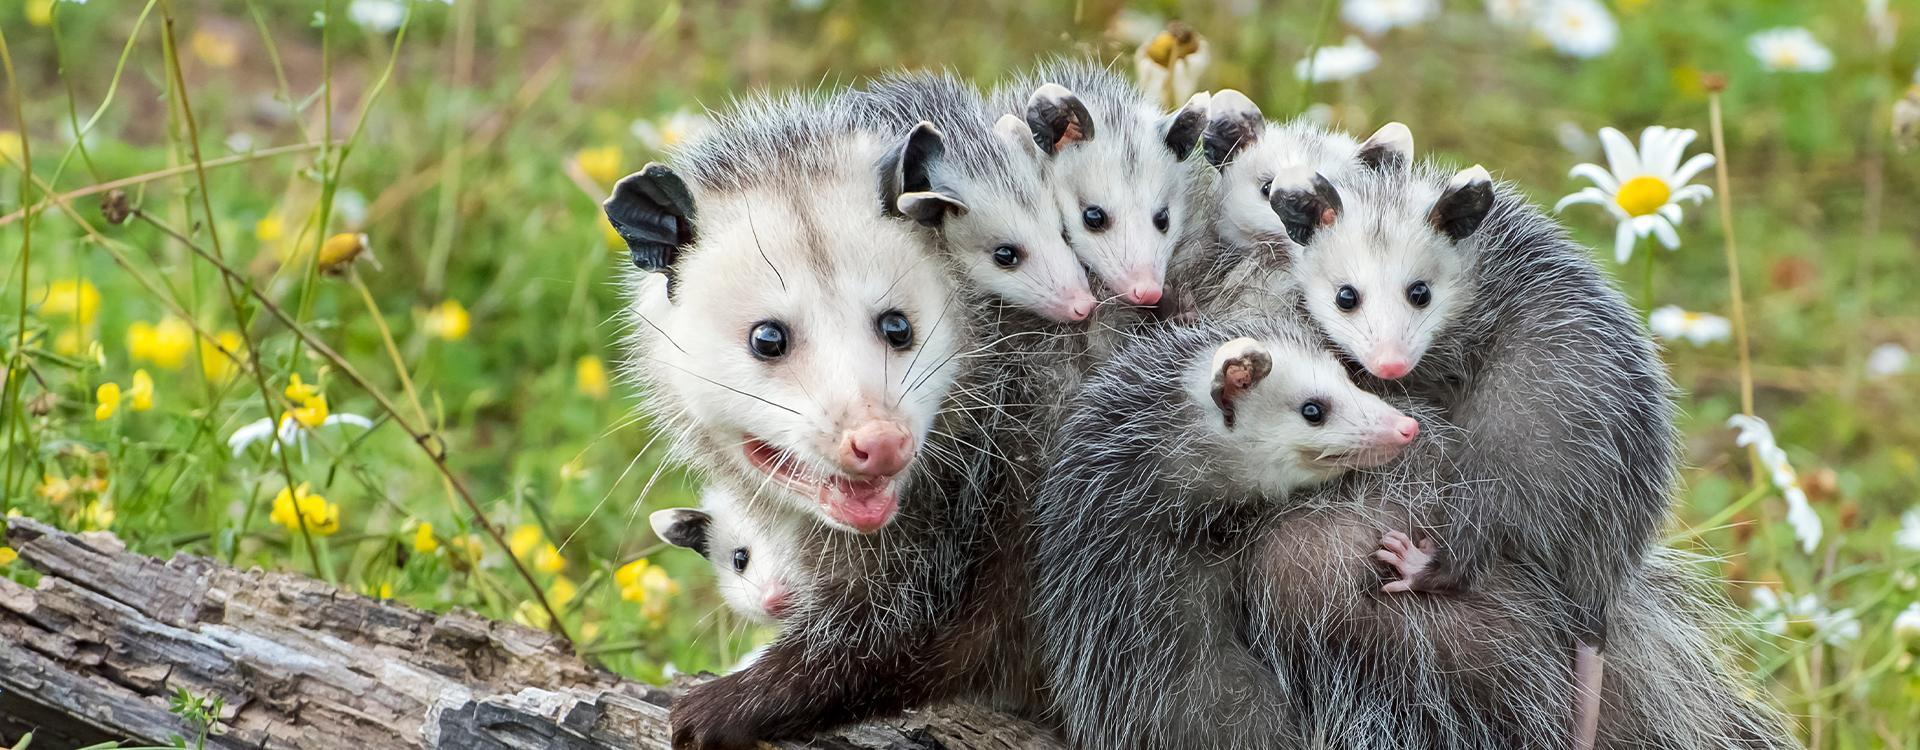 a group of opossums in california